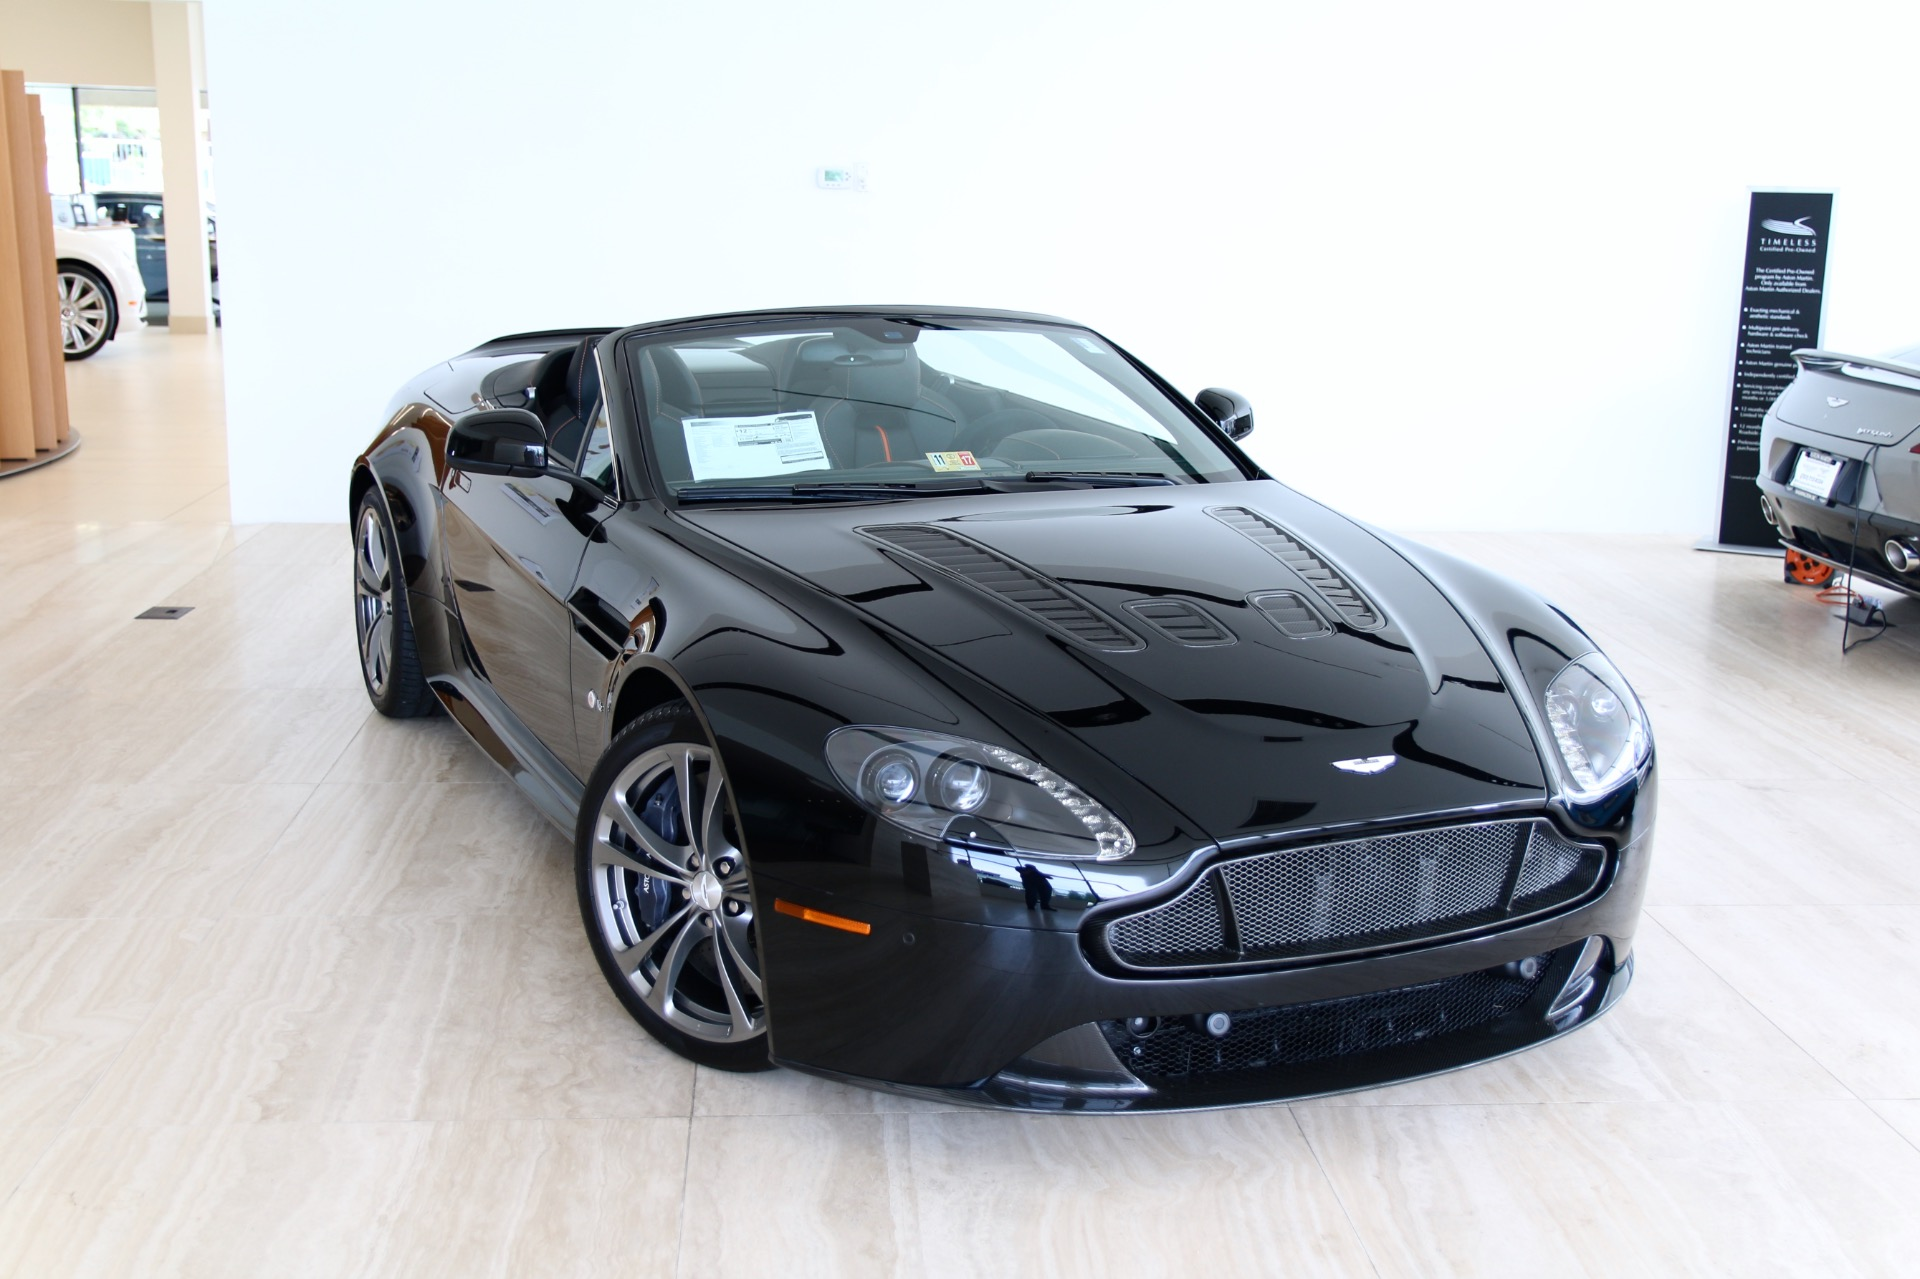 2017 aston martin v12 vantage s roadster stock # 7ns22786 for sale